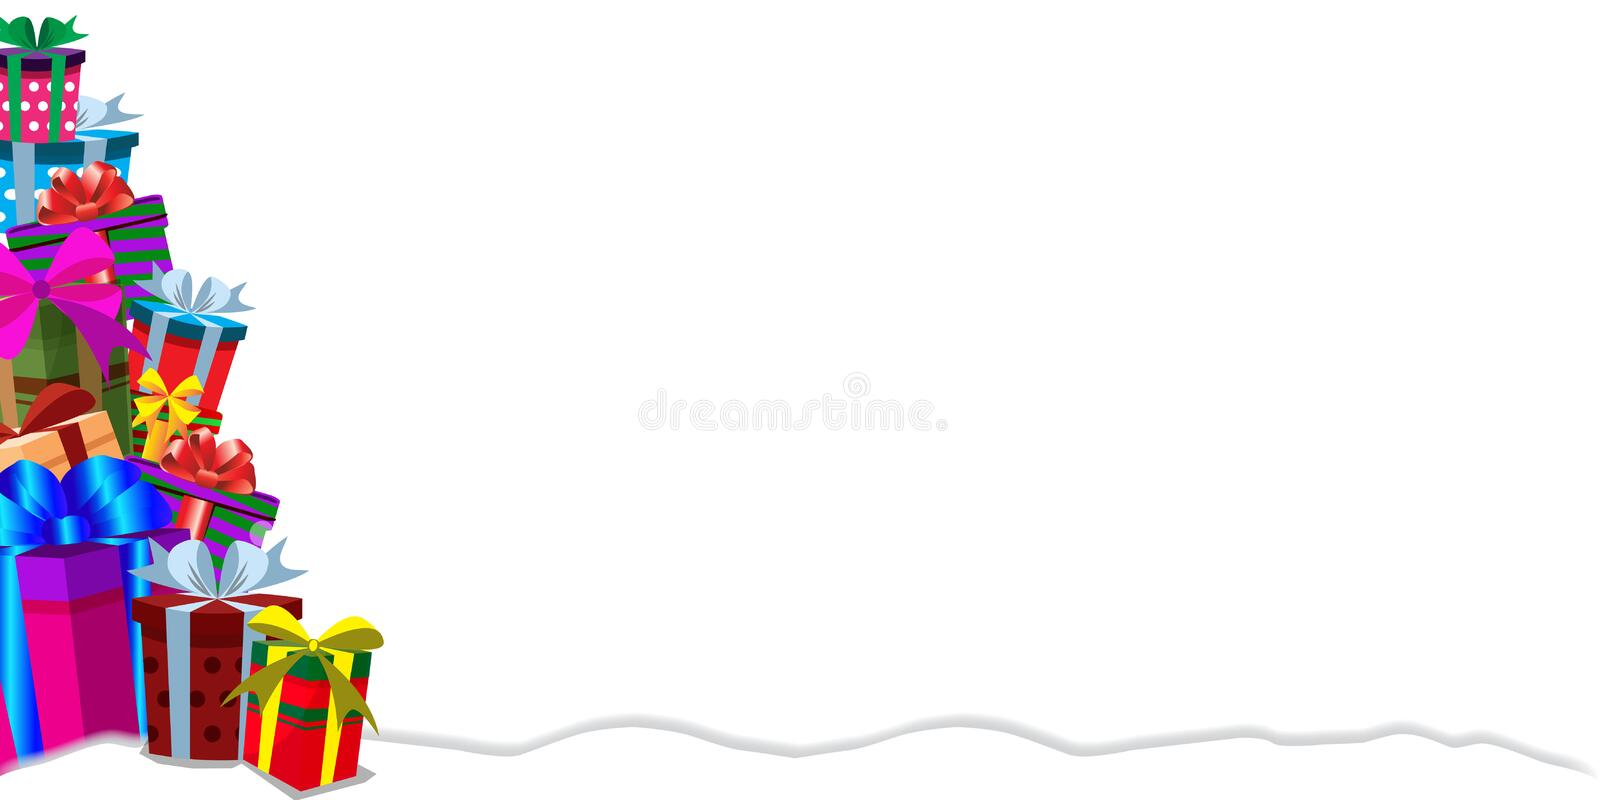 Festive banner template with heap of gifts on snow with copy space. Festive holiday background with gifts in traditional holiday style. Christmas, new year royalty free illustration